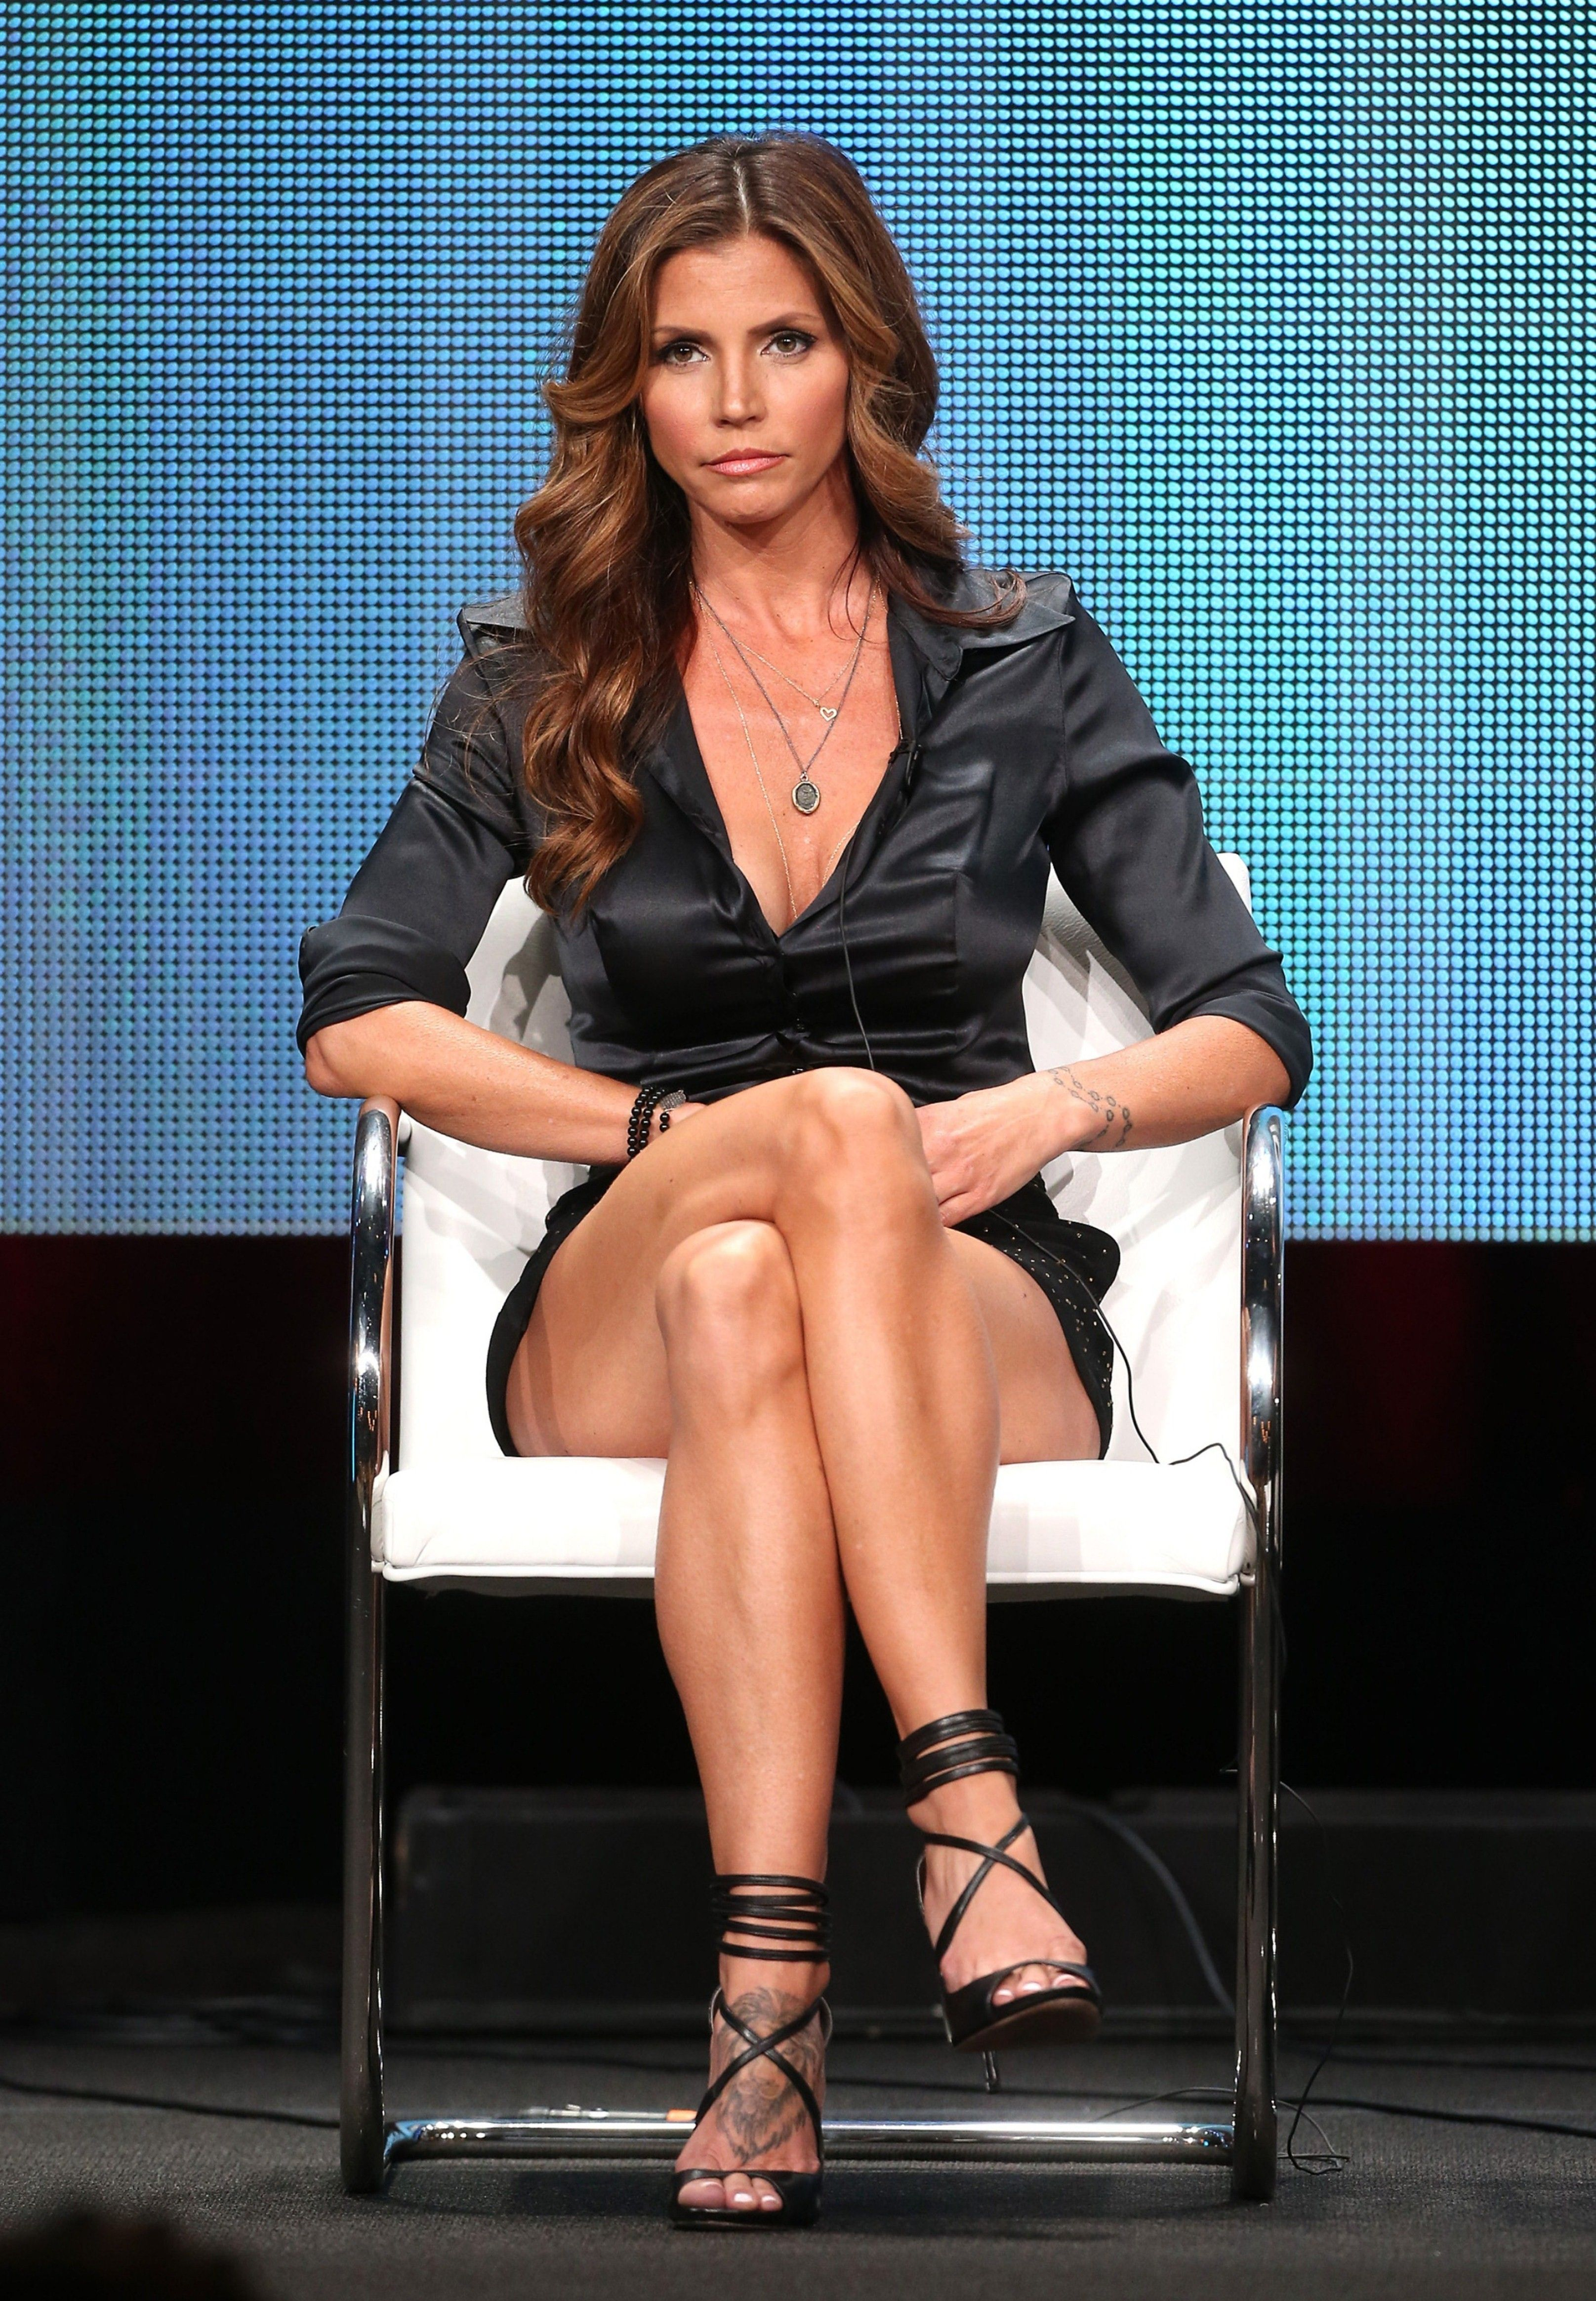 Charisma carpenters feet wikifeet charisma carpenter charisma carpenters feet wikifeet voltagebd Image collections